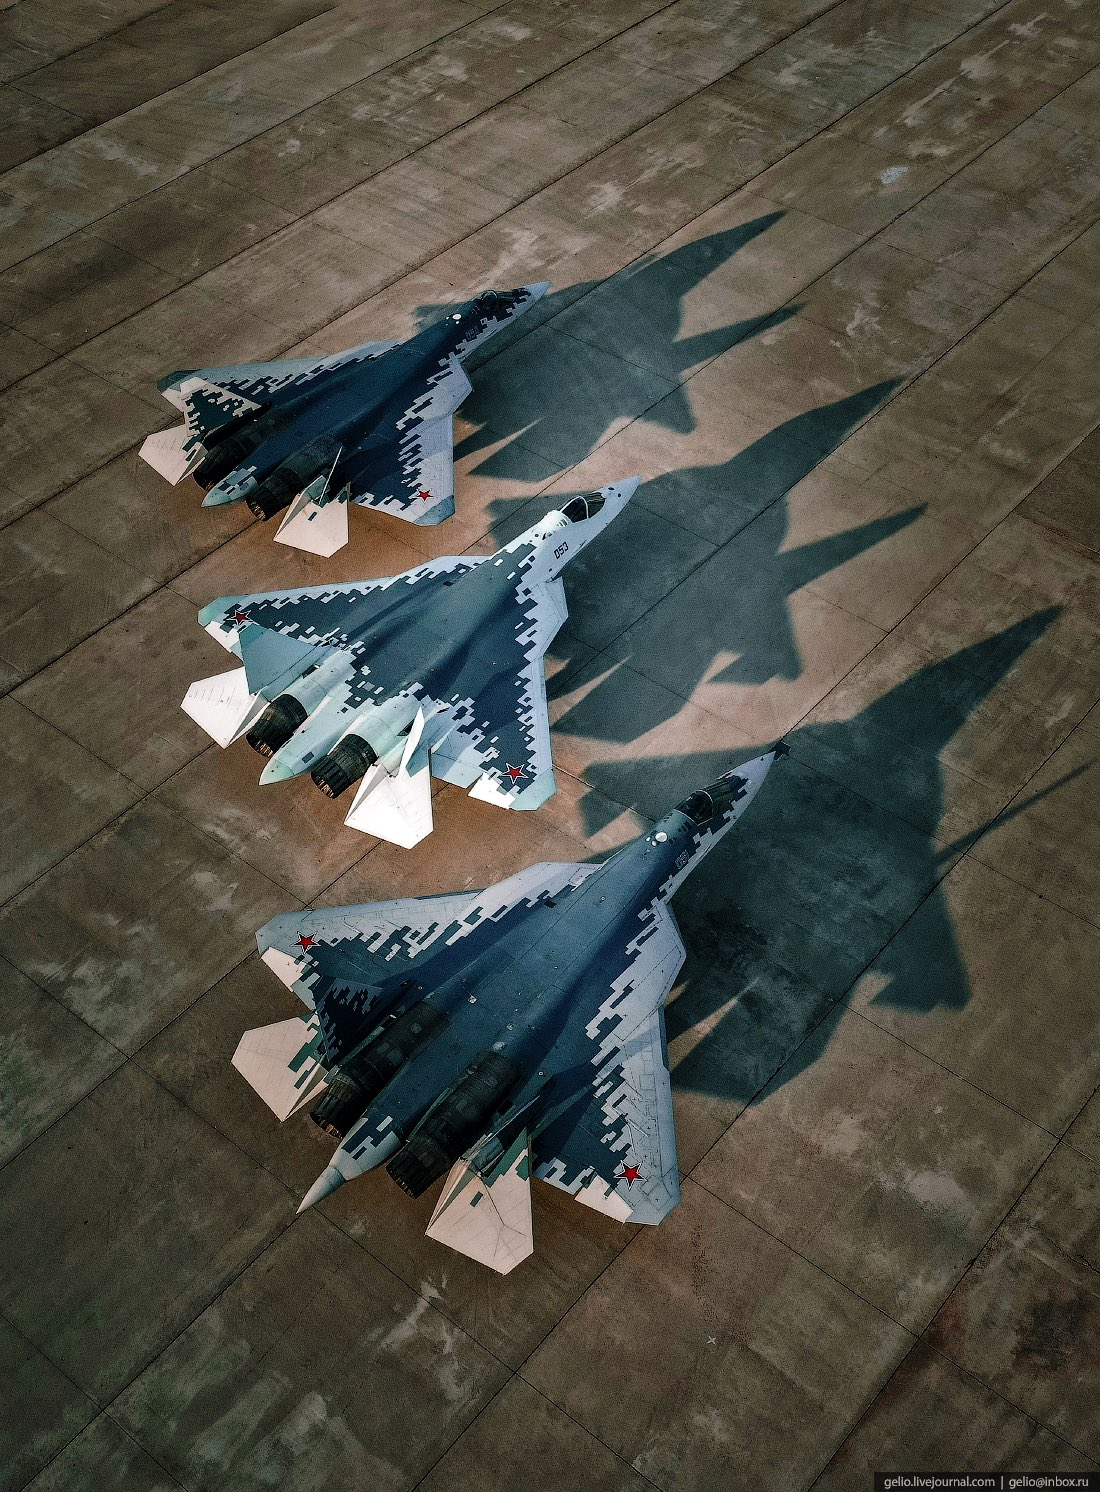 Su-57 Stealth Fighter: News #8 FCTbE87XsAI4Gq4?format=jpg&name=large